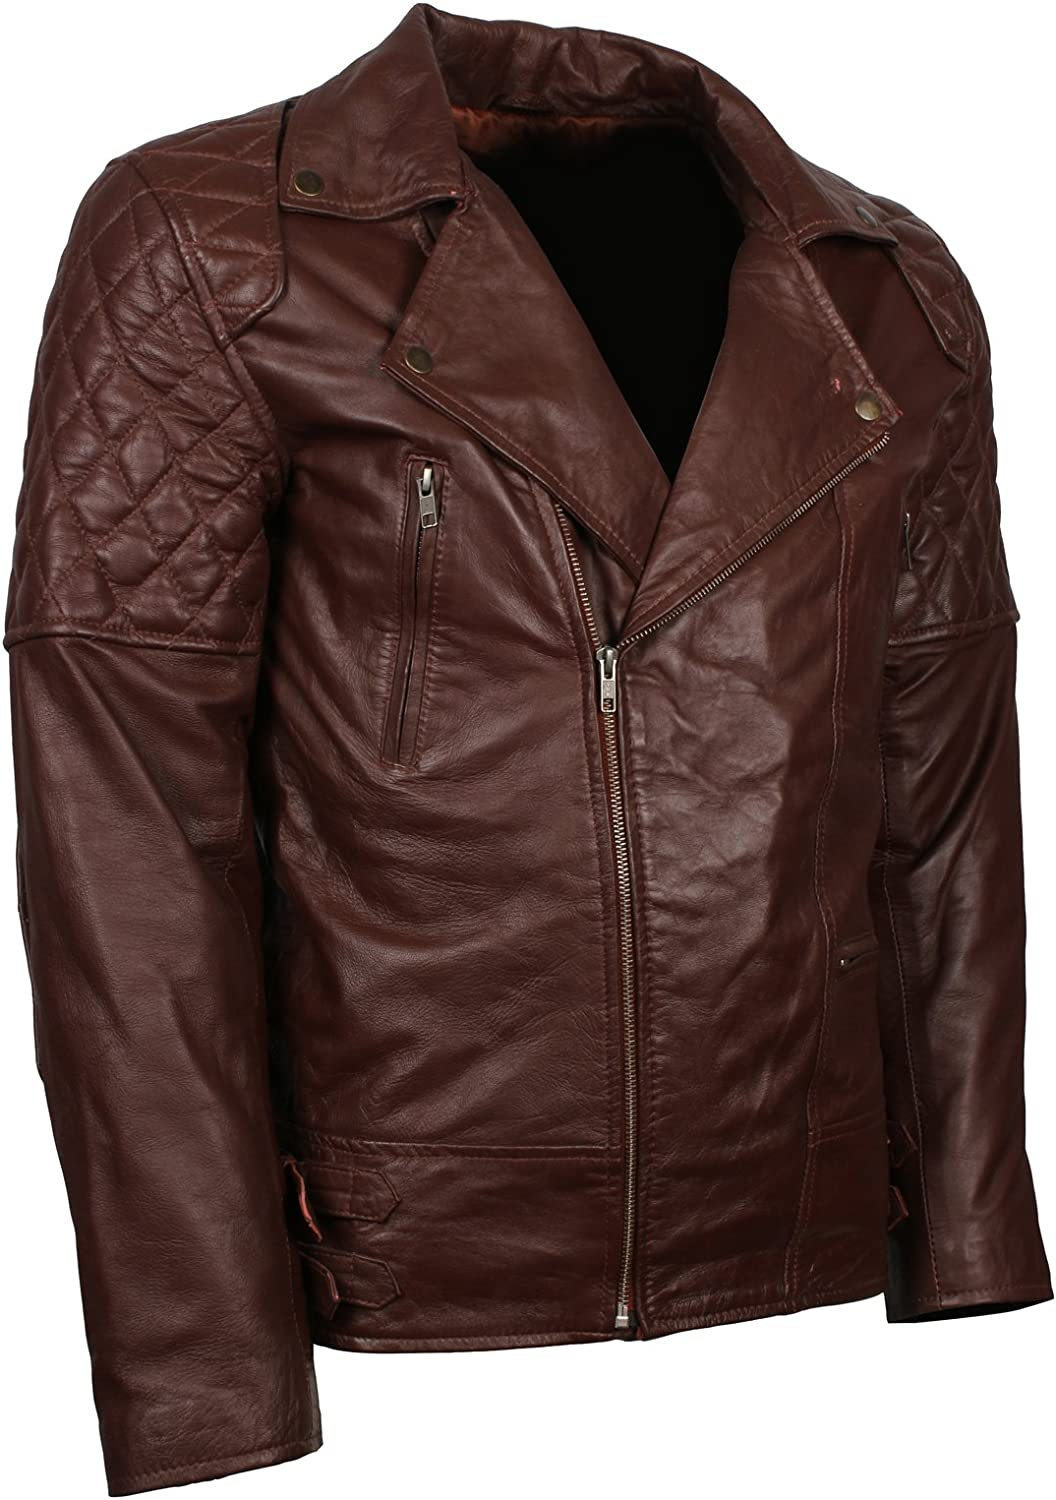 Mens Diamond Quilted Classical Biker Style Brown Leather Jacket